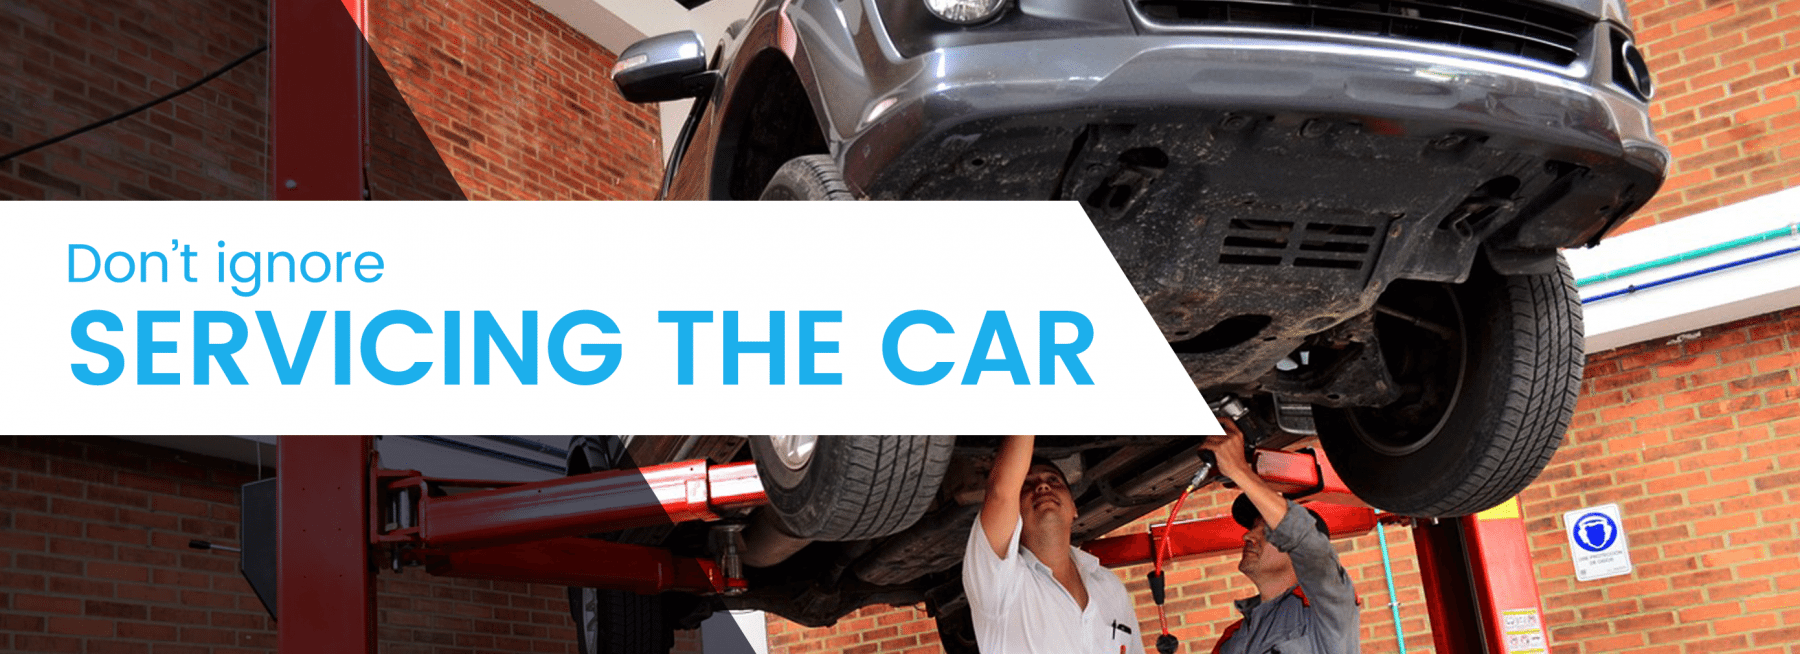 Dont forget to service your car - Sandgate Auto Electrics